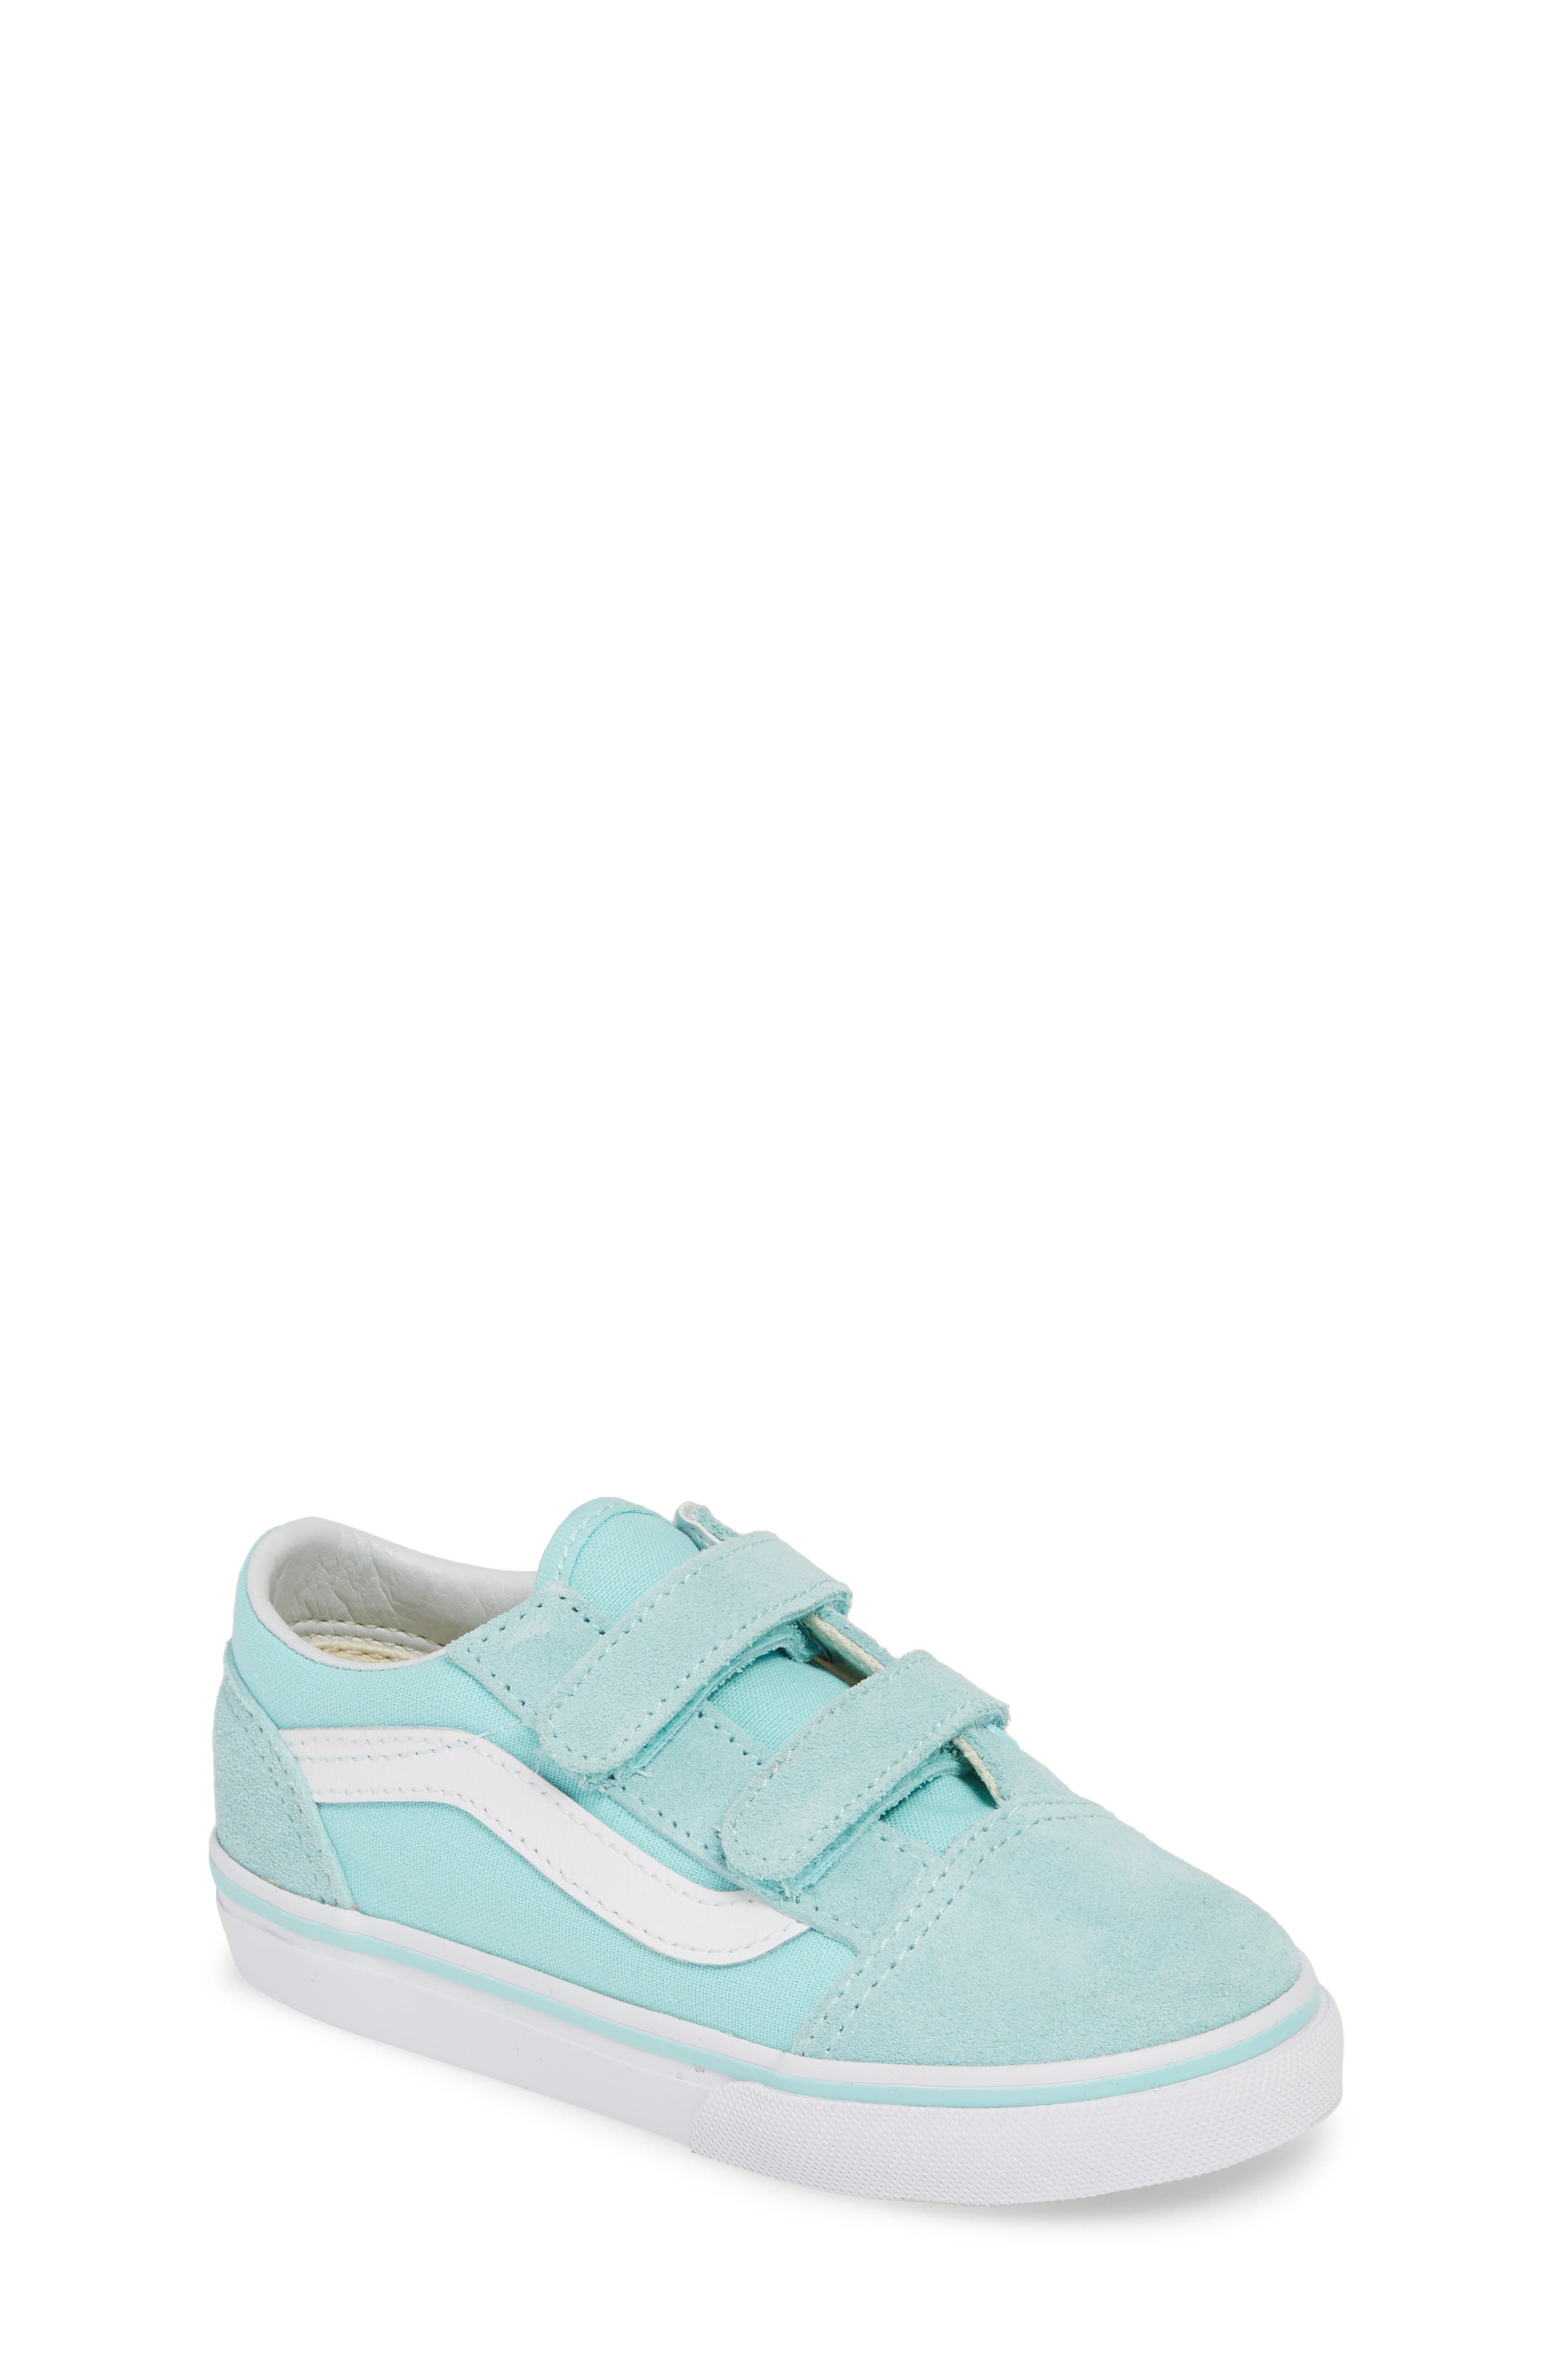 b0b945c196 Baby Girl Vans Shoes